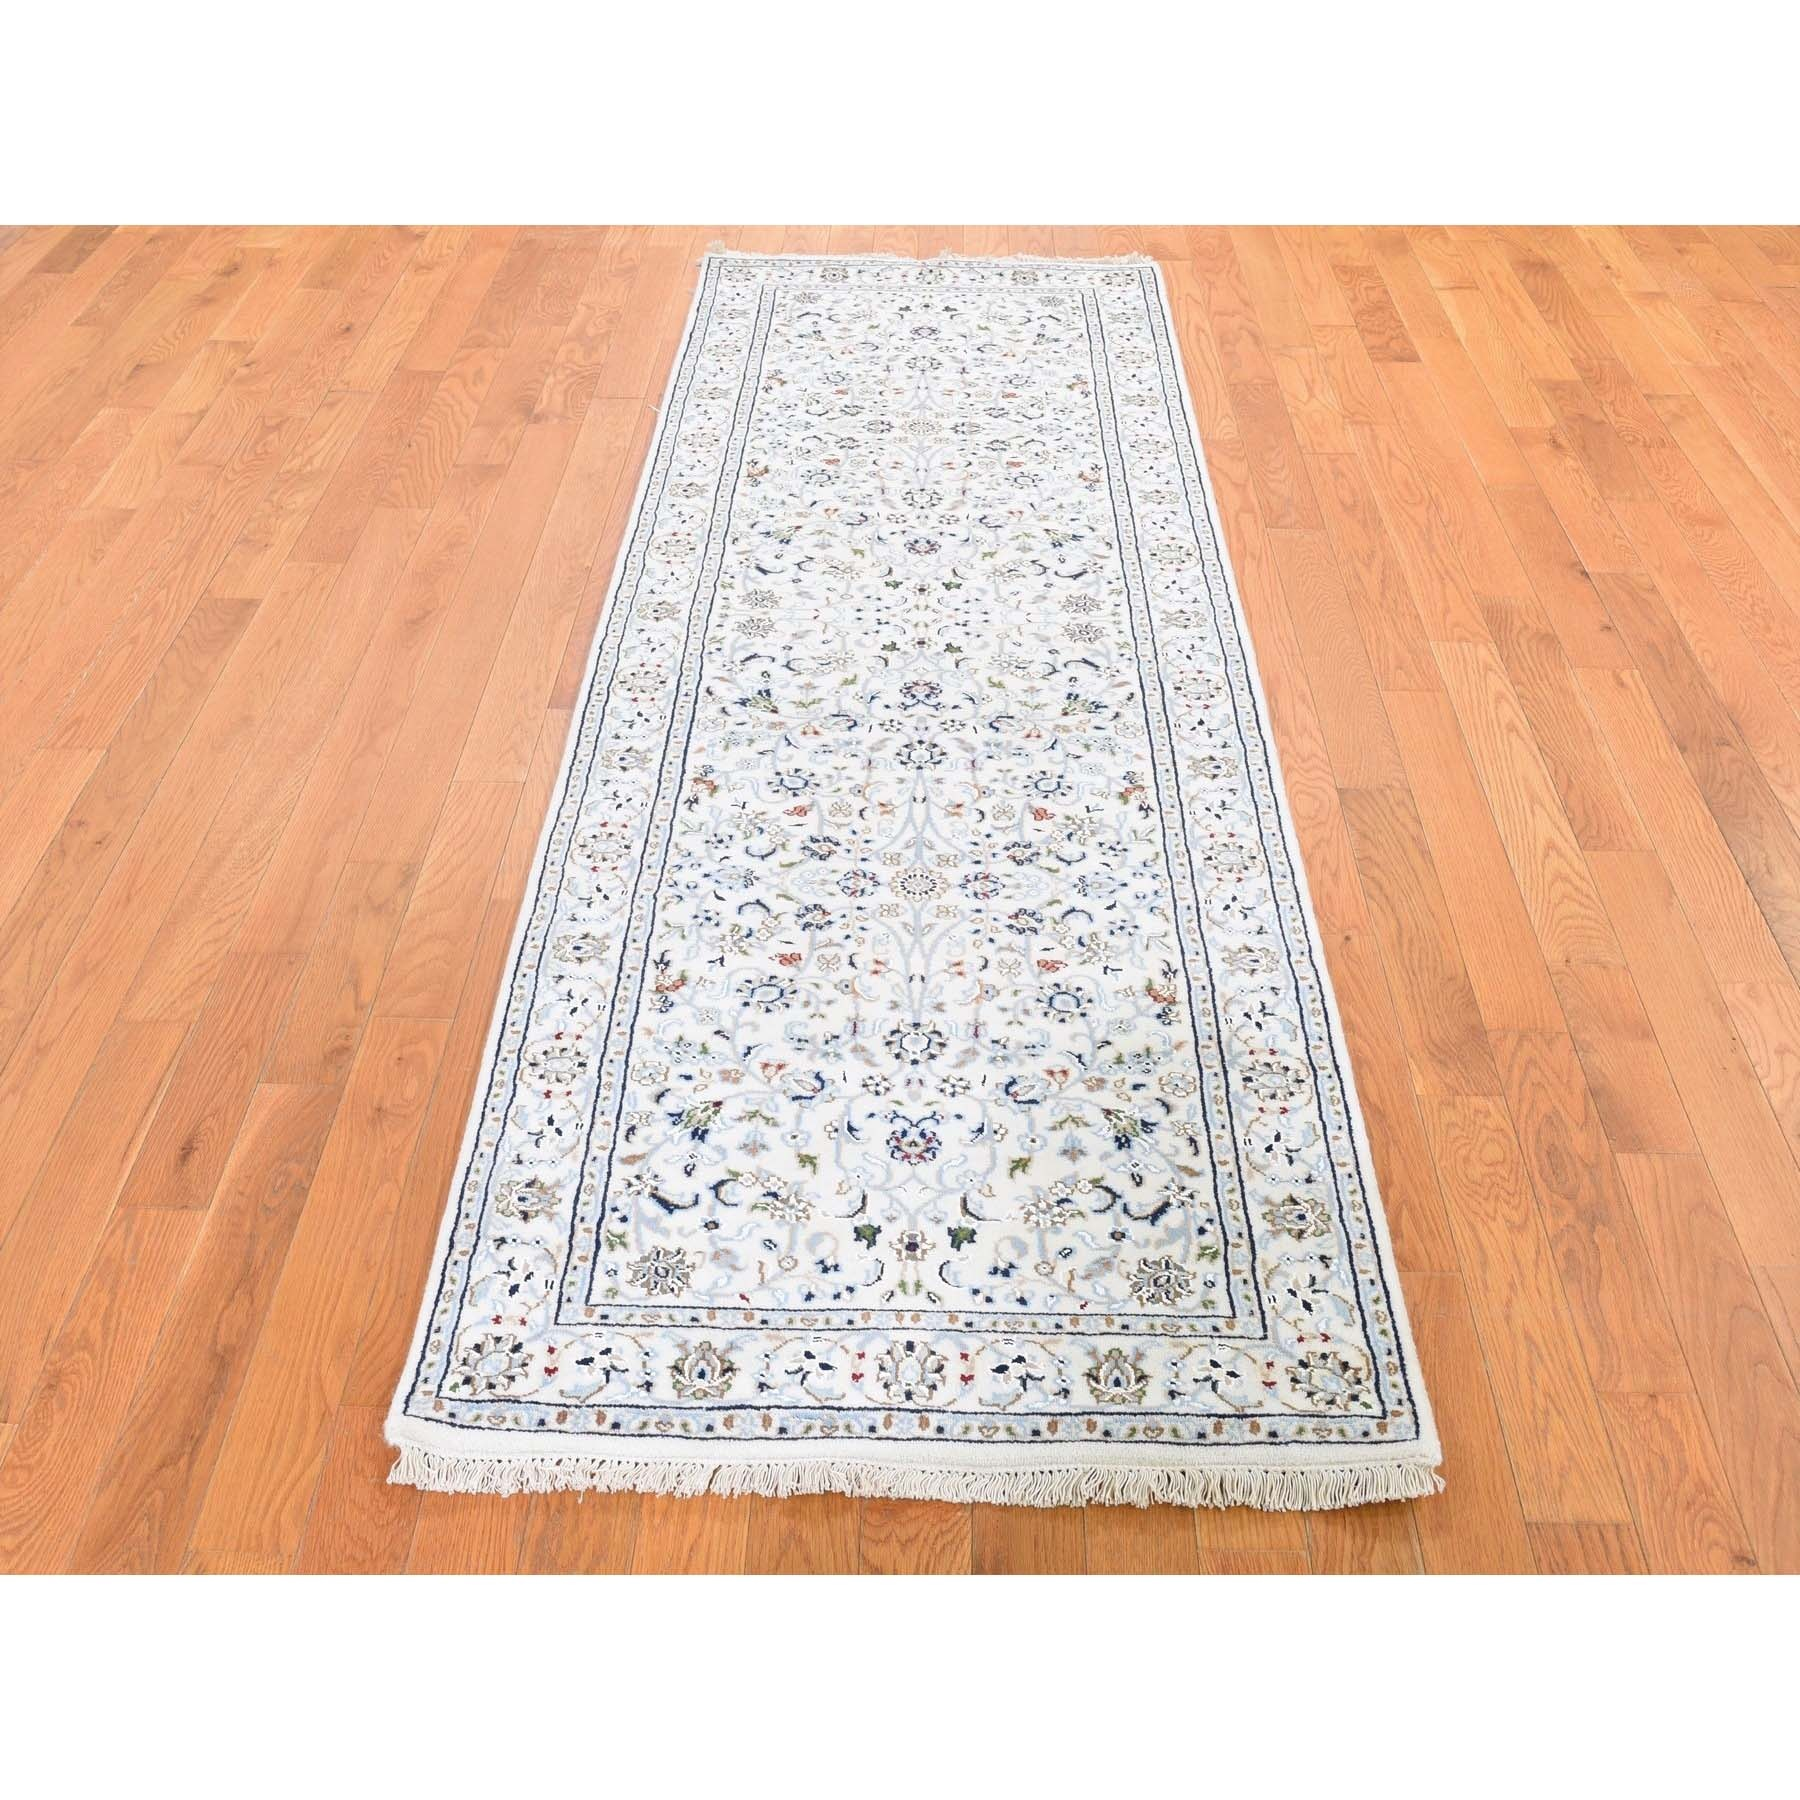 """2'8""""x8' Ivory Wool And Silk 250 Kpsi All Over Design Nain Runner Hand-Knotted Oriental Rug"""